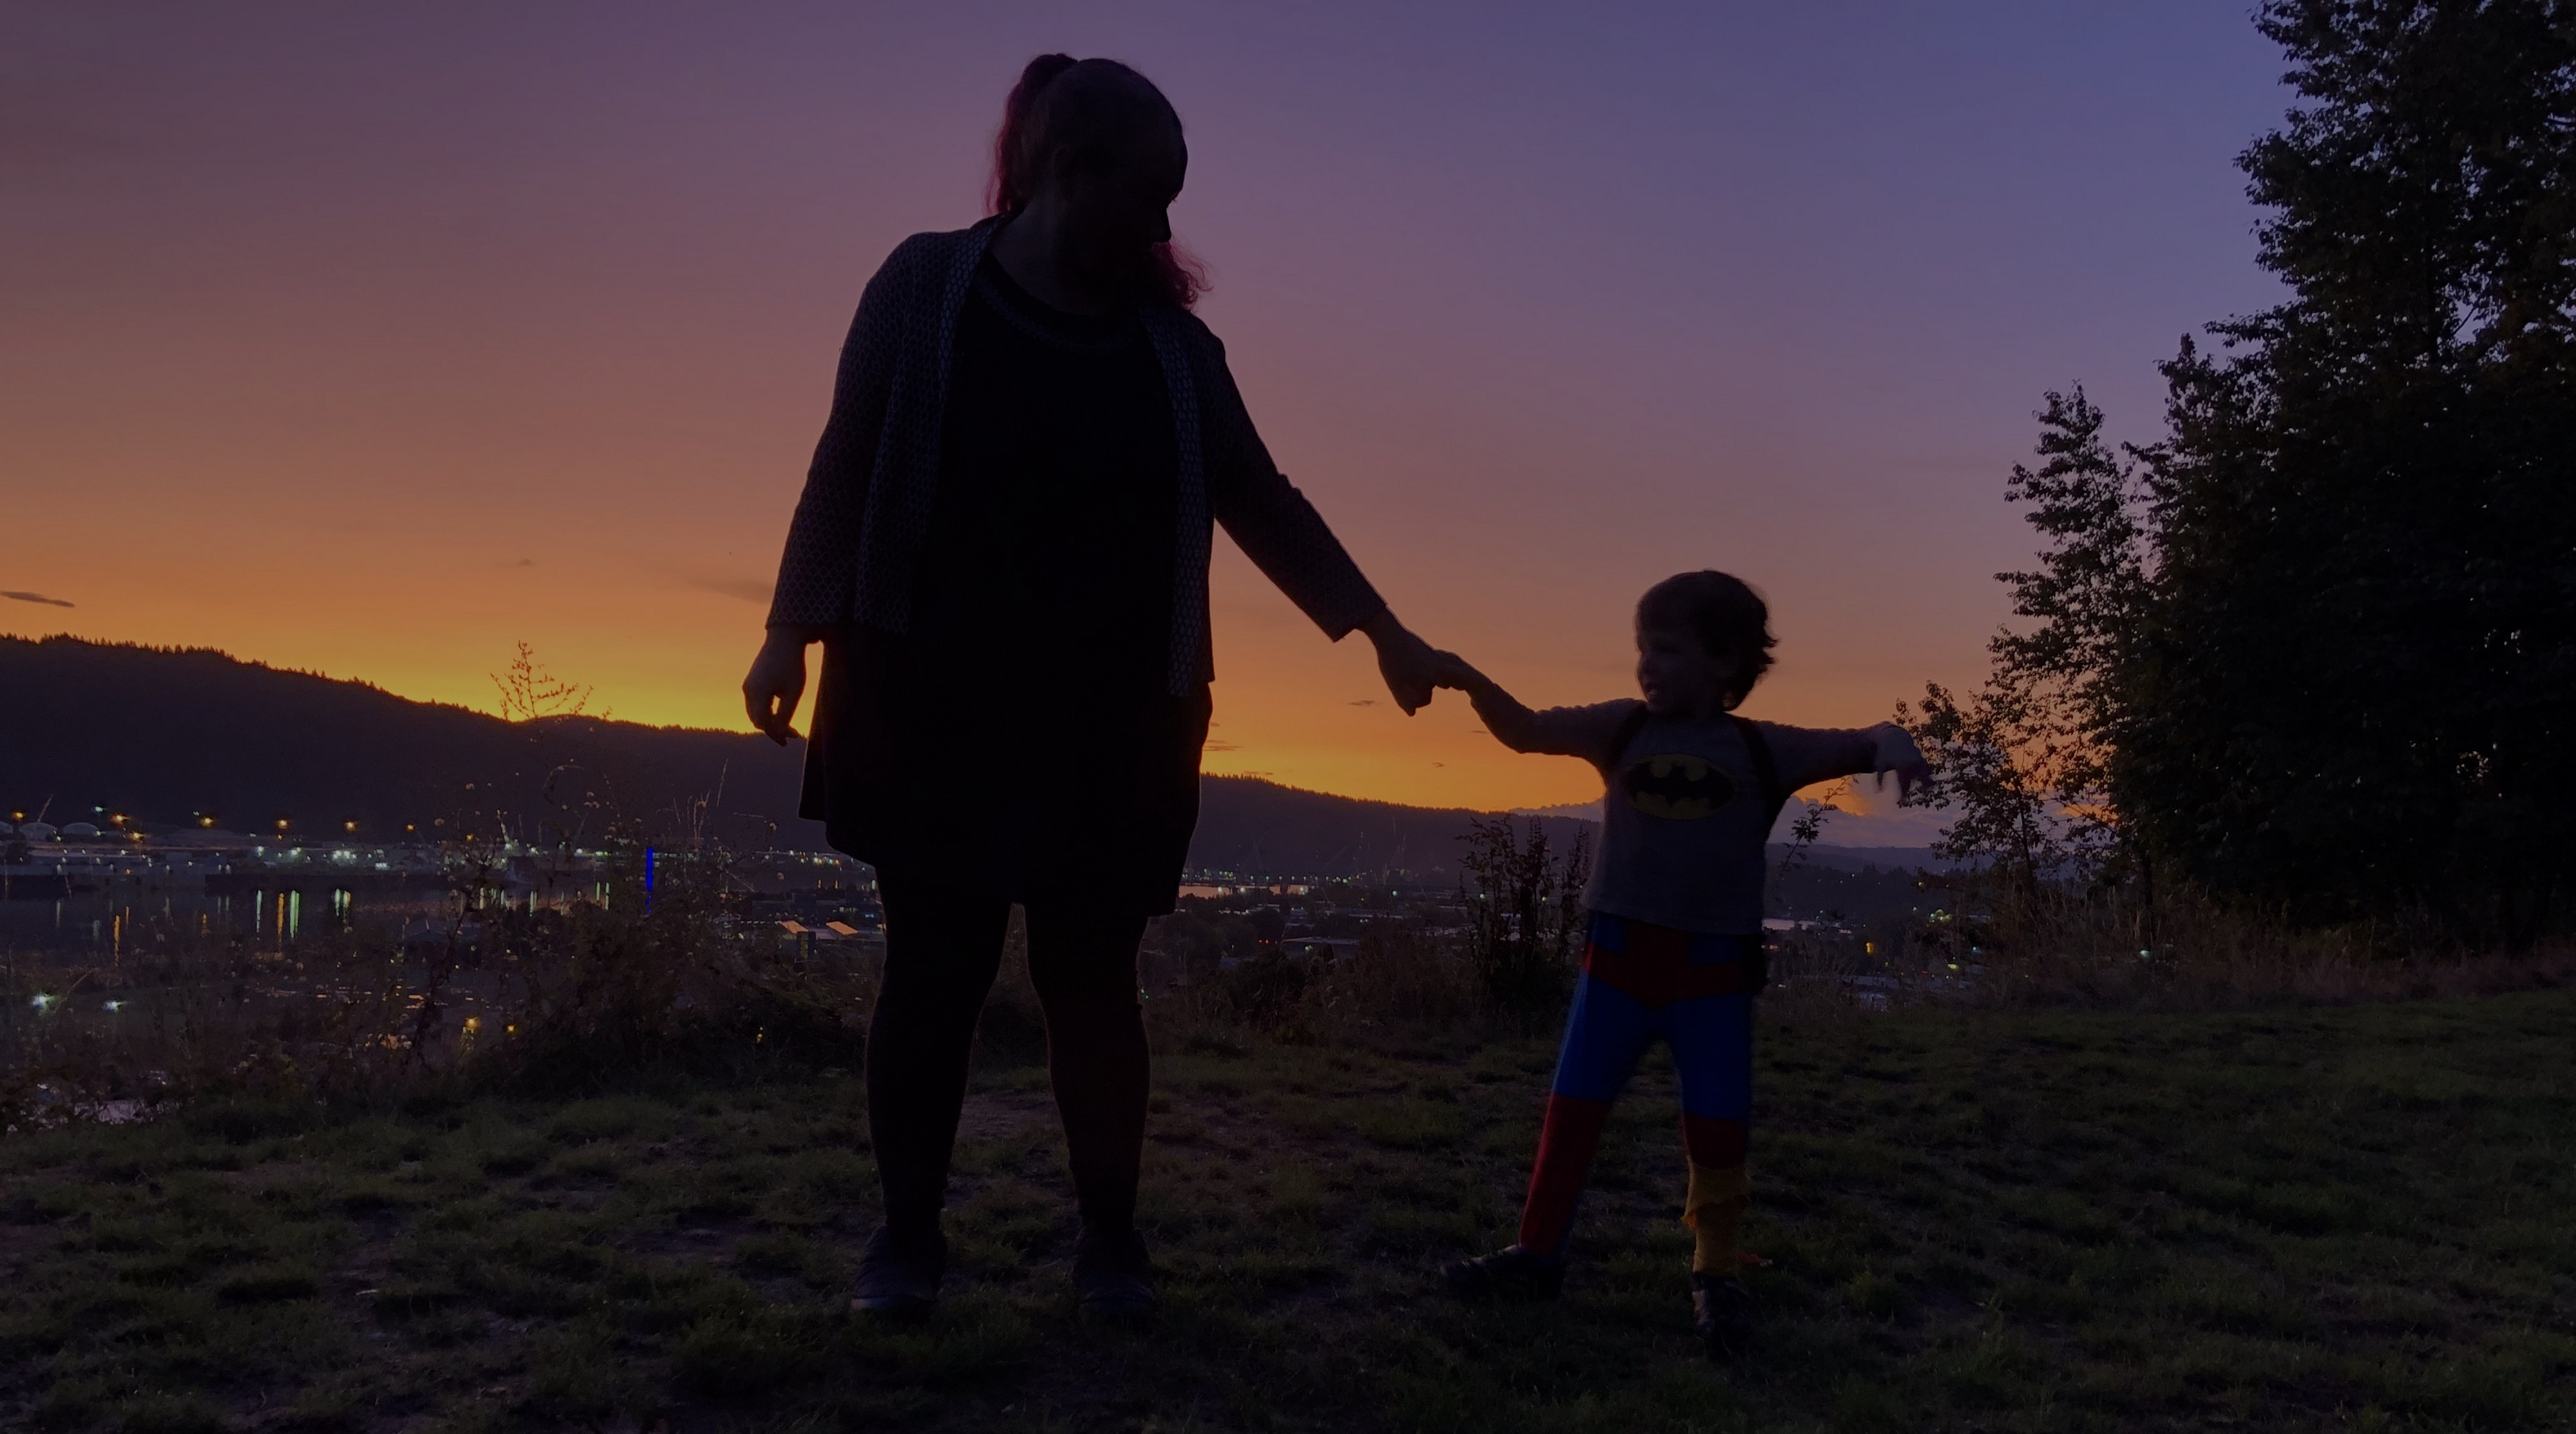 Mother and son holding hands and telling tales with the sunset in the background.